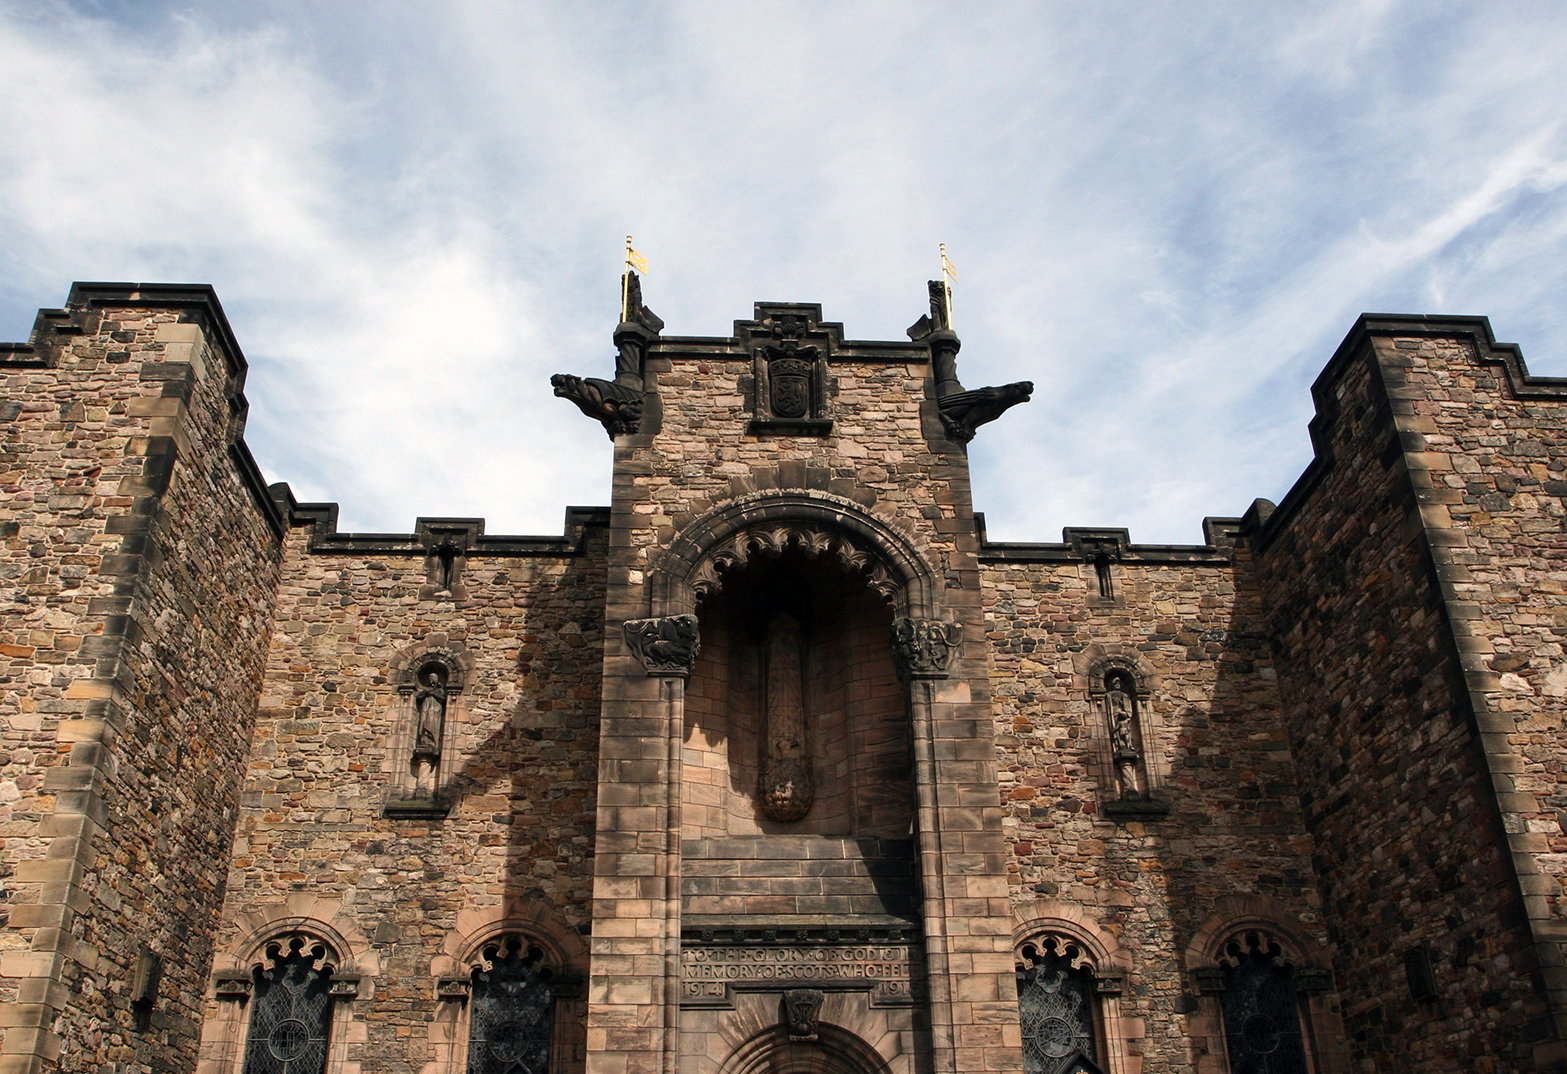 edinburgh_castle_02.jpg